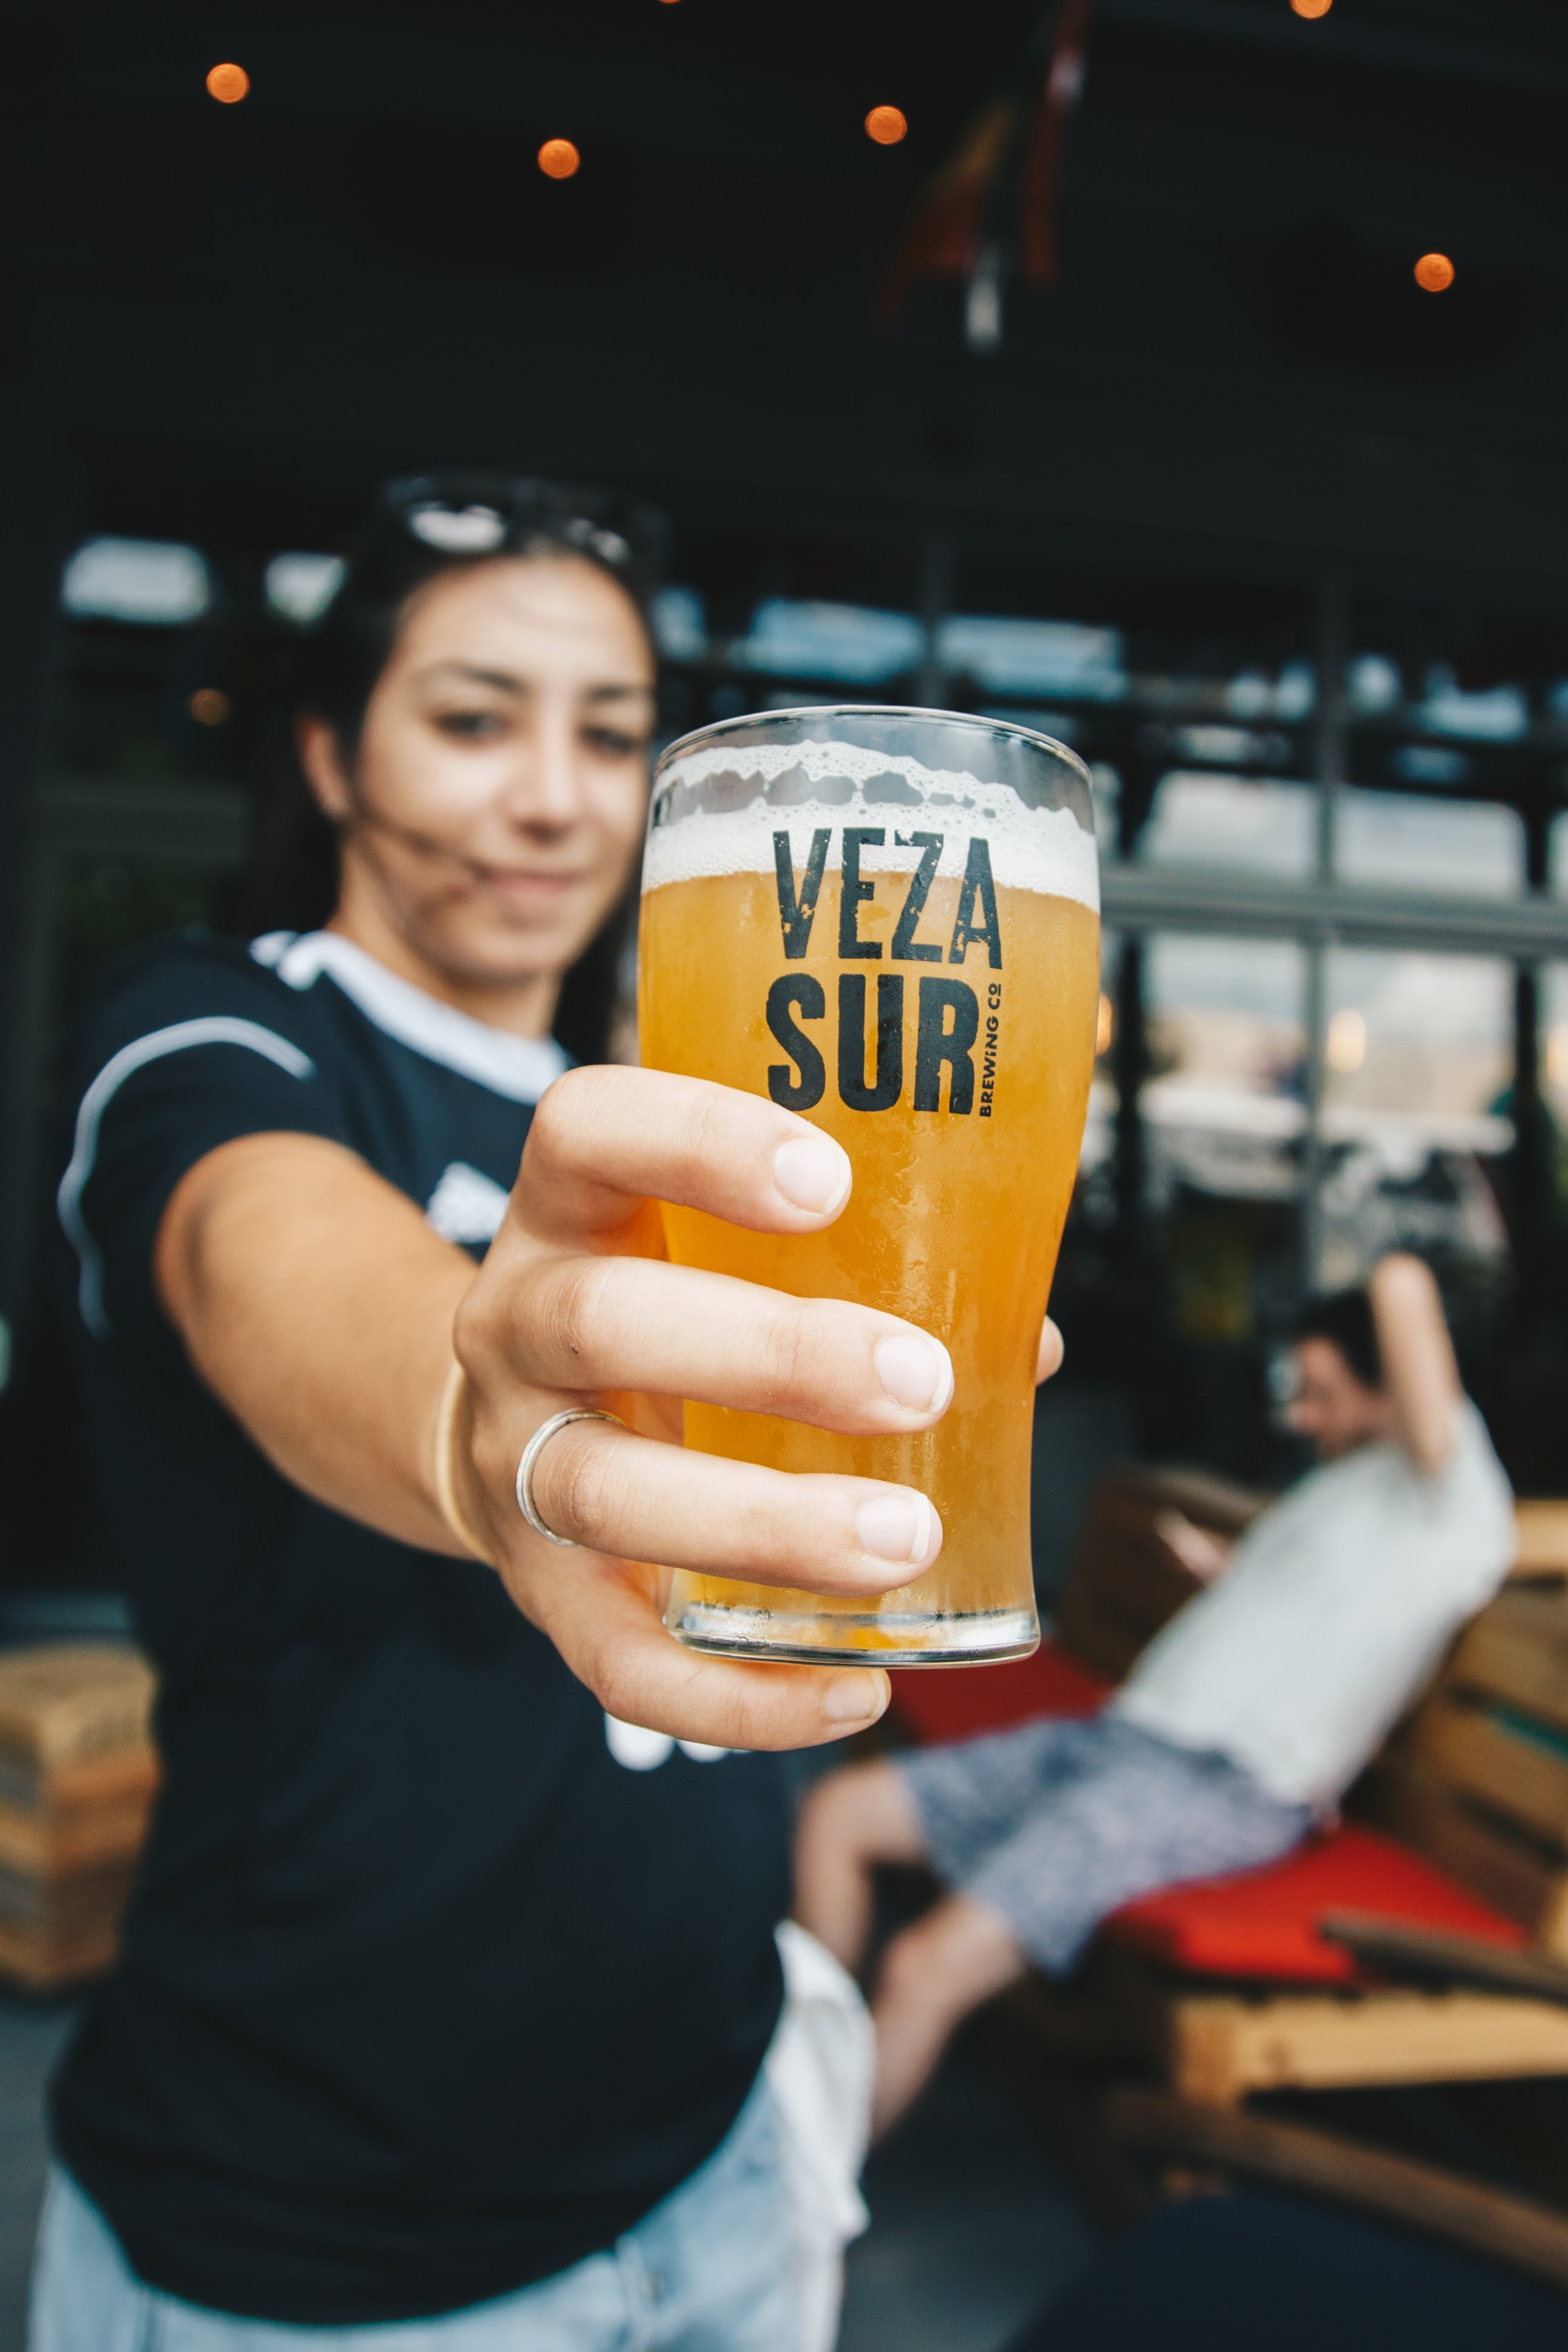 woman holding Veza Sur drinking glass cup filled with beer